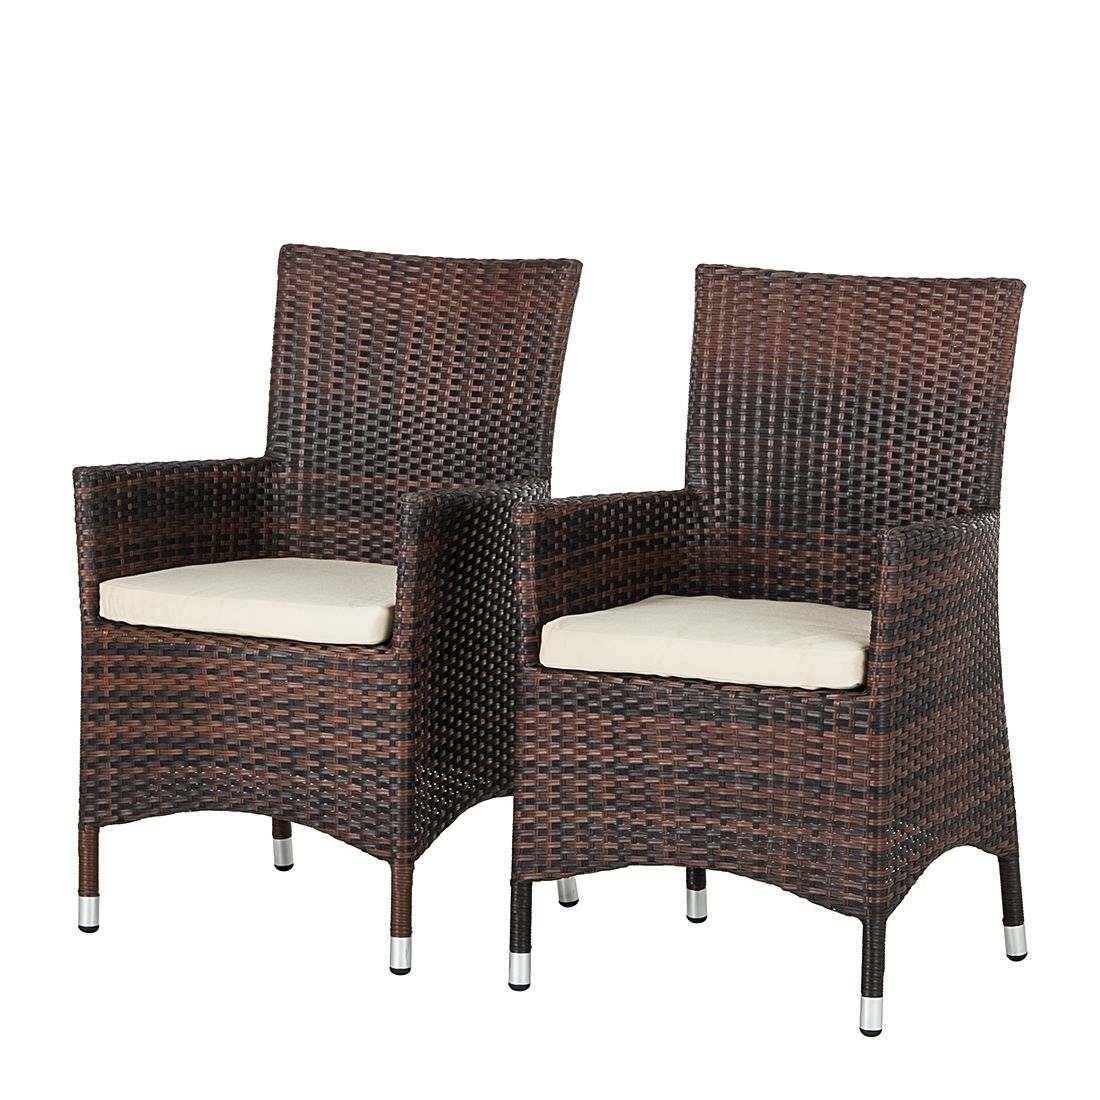 fauteuil de jardin paradise lounge lot de 2 poly rotin marron m l fredriks par fredriks. Black Bedroom Furniture Sets. Home Design Ideas